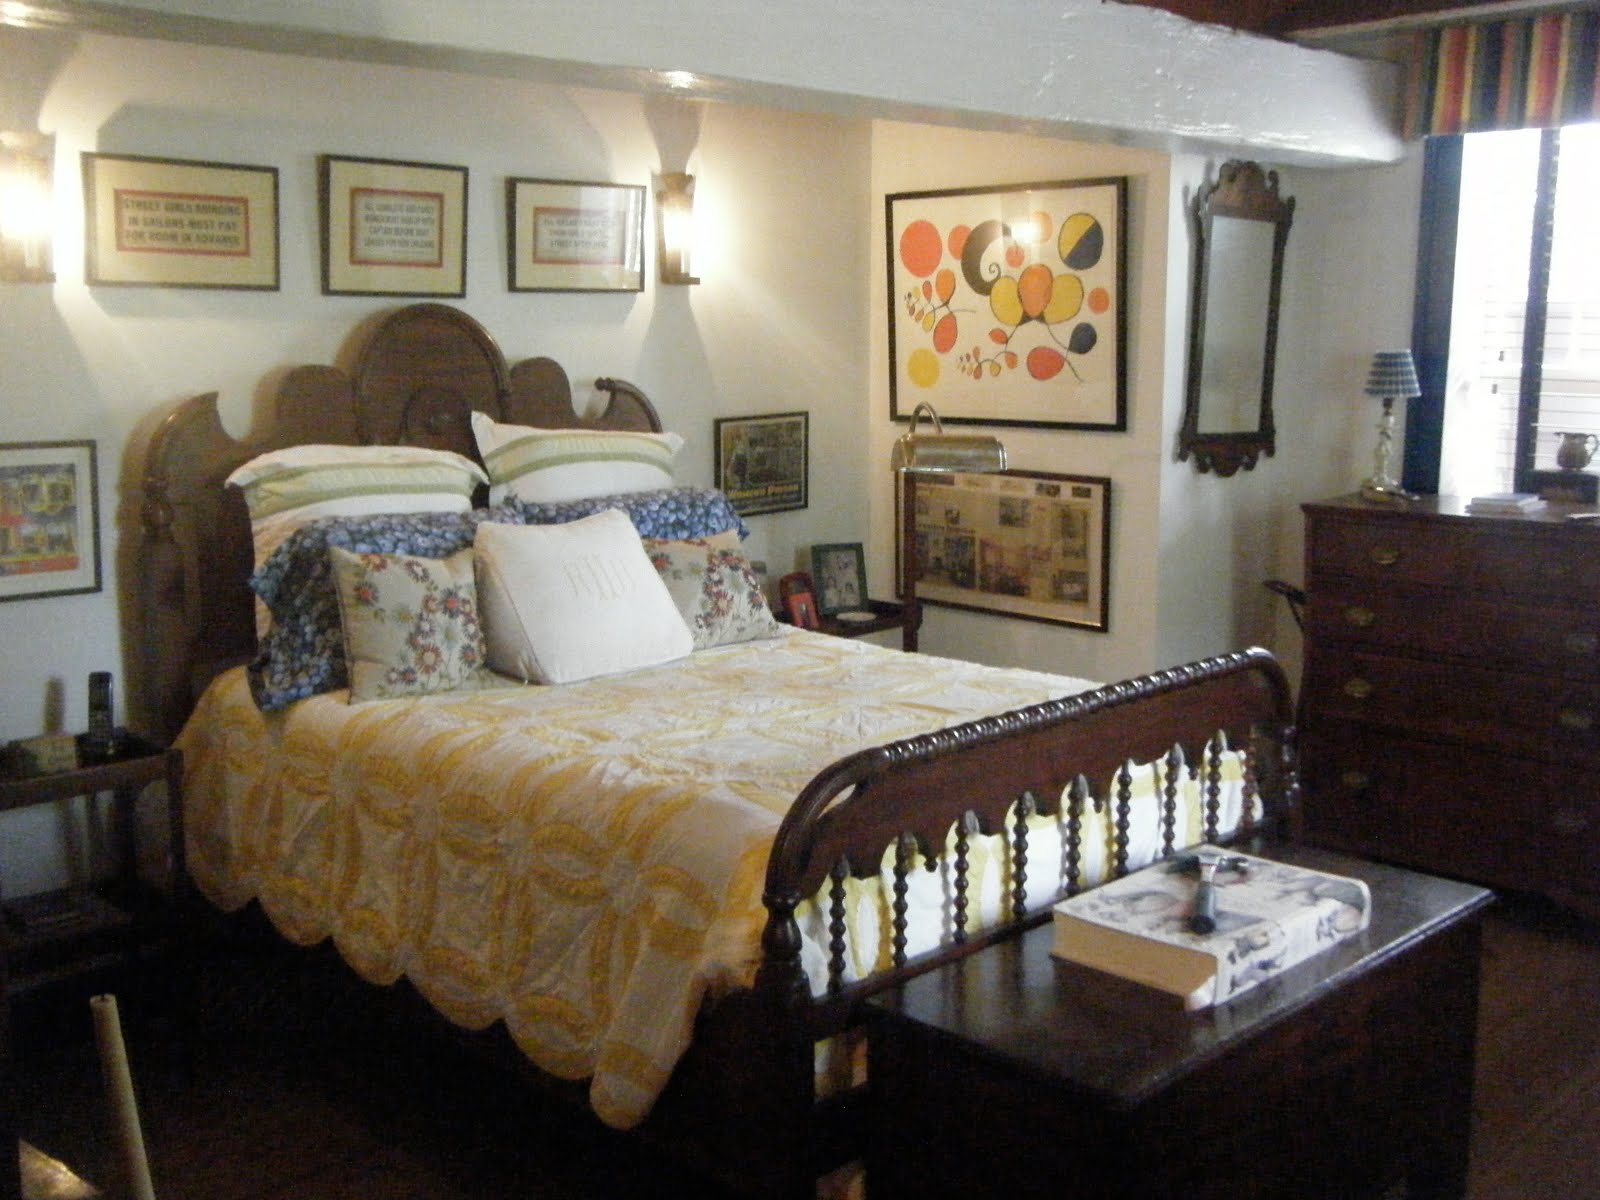 old fashioned master bedroom and old fashioned charm of